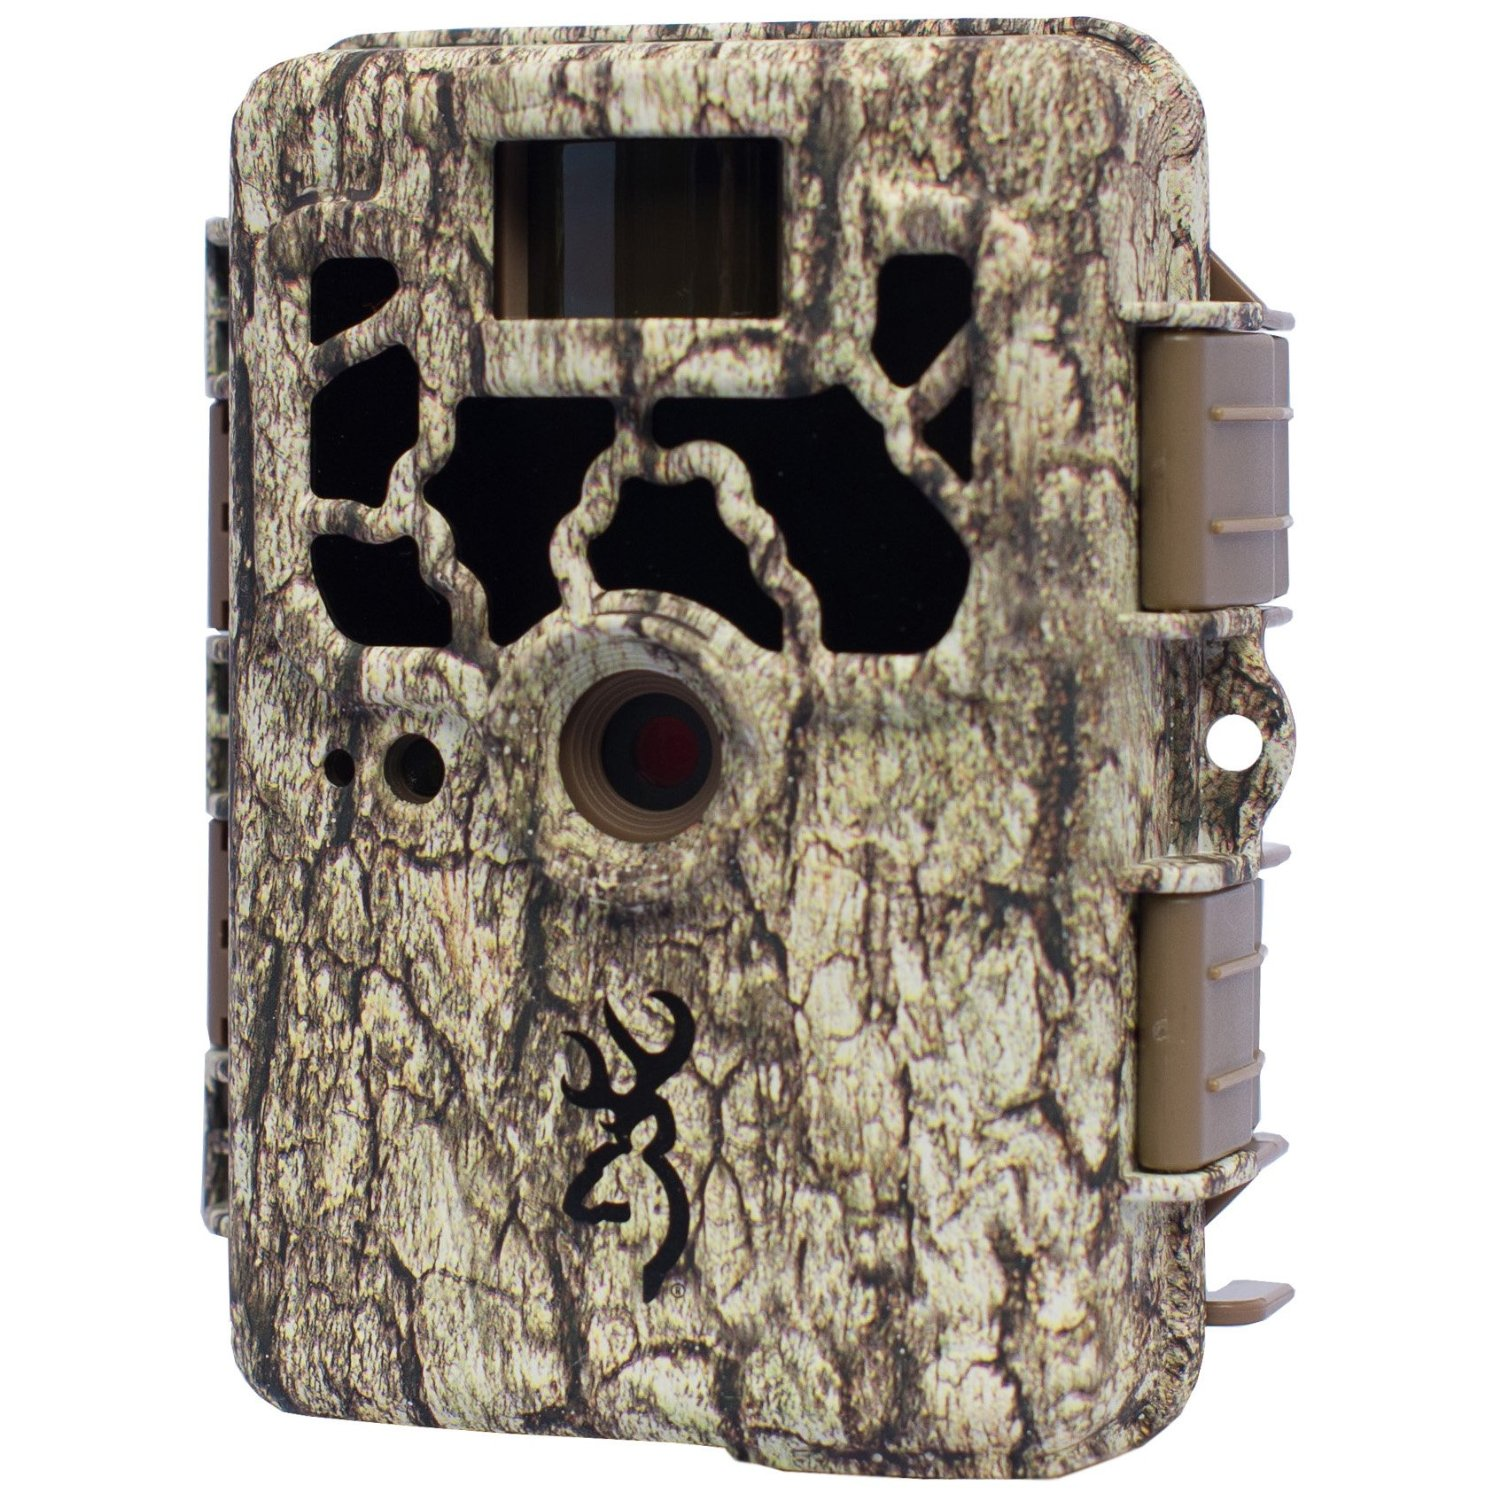 Top 10 Best Trail Cameras of 2017 | Expert Product Reviewer